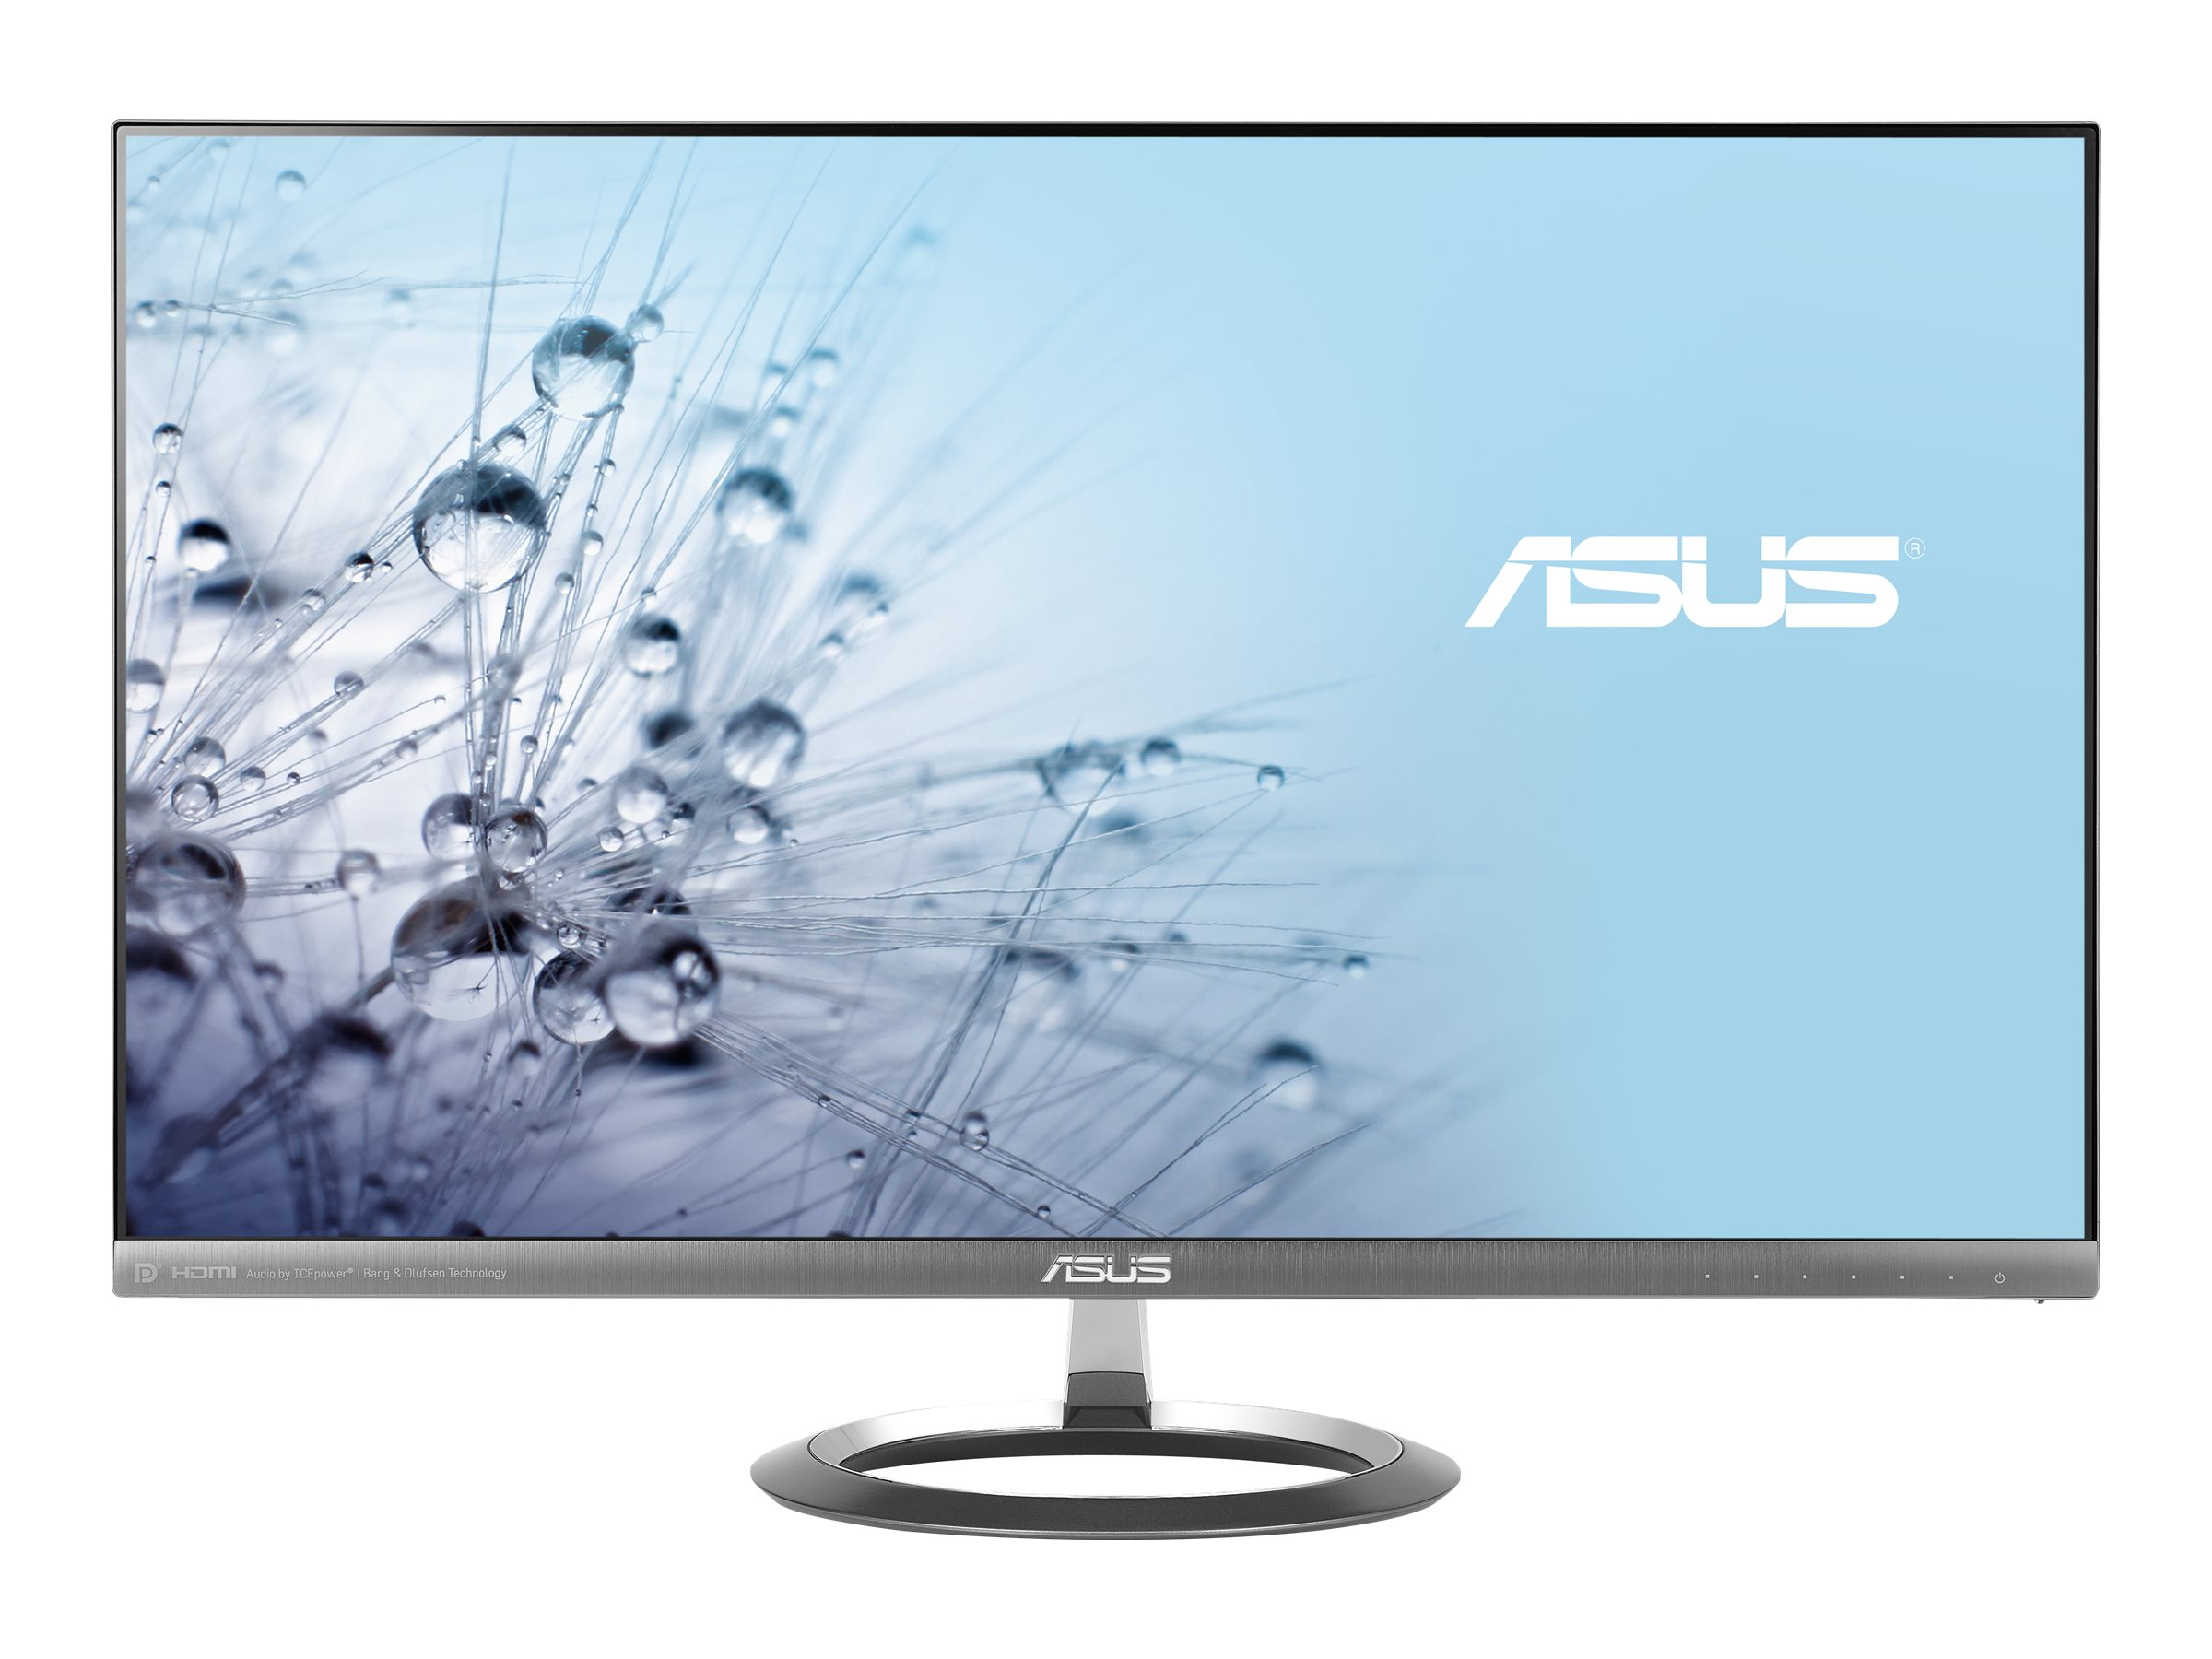 Asus 27 MX27AQ WQHD LED-LCD Monitor, Space Gray Black, MX27AQ, 19507071, Monitors - LED-LCD